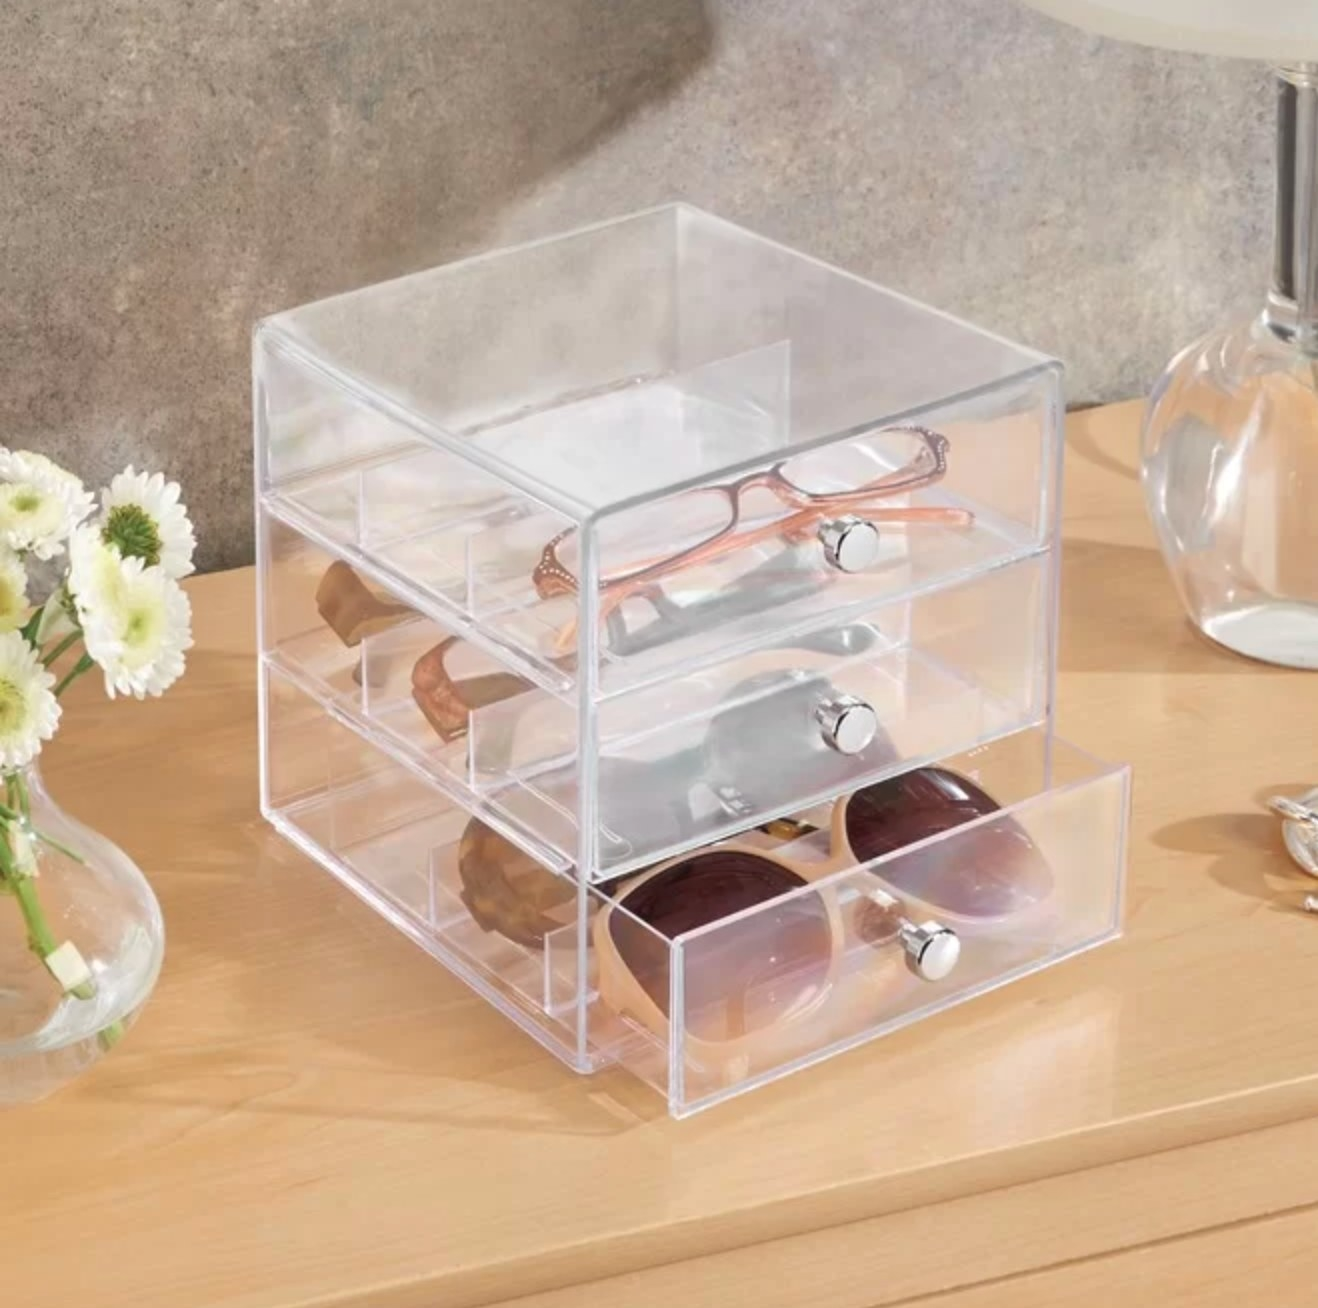 The sunglass organizer in clear plastic